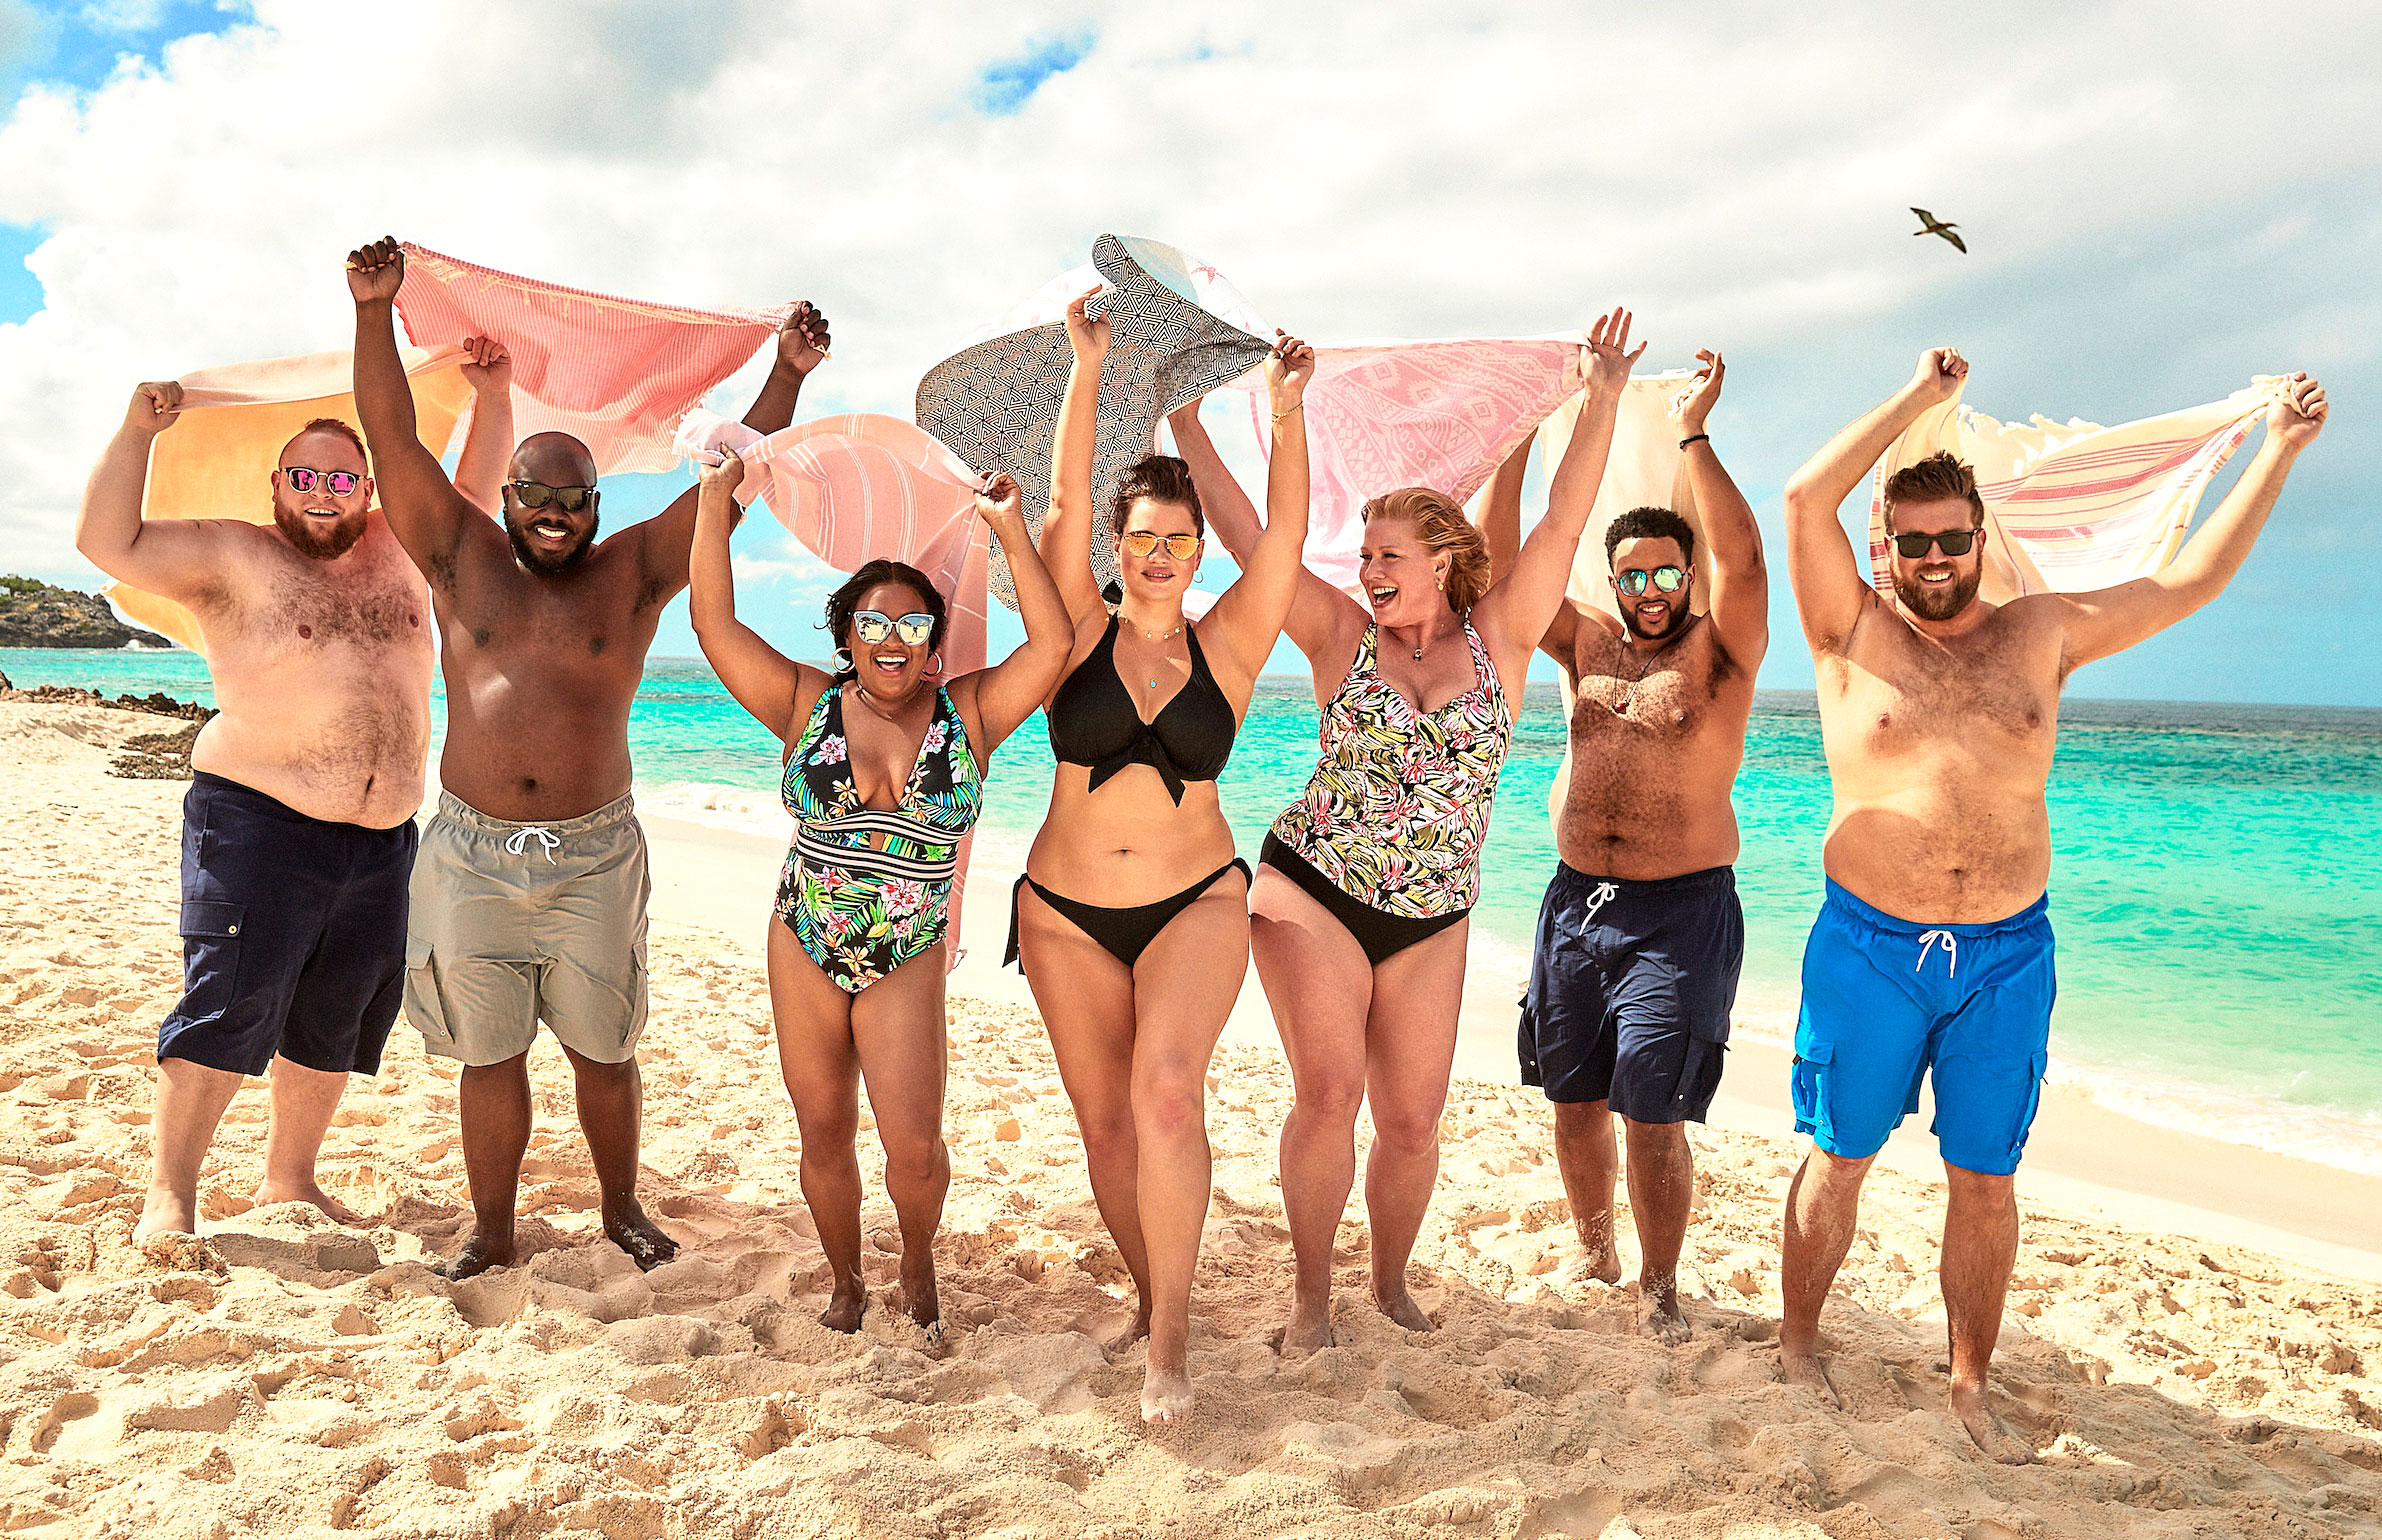 Ashley Graham Sherri Shepherd Lead Body-Positive Swim Campaign - The models look joyful as they throw their hands up in the air.